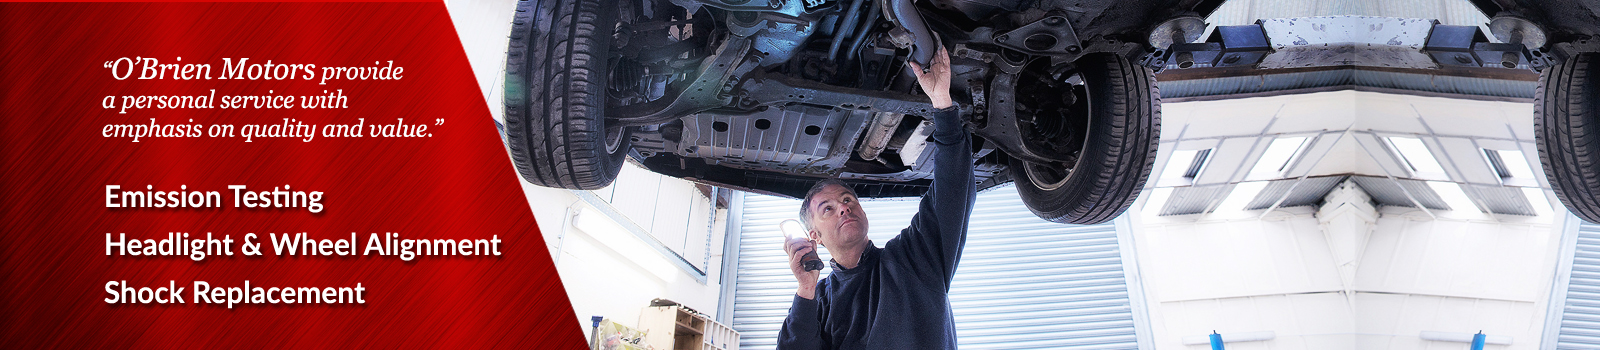 Best Car Services Waterford